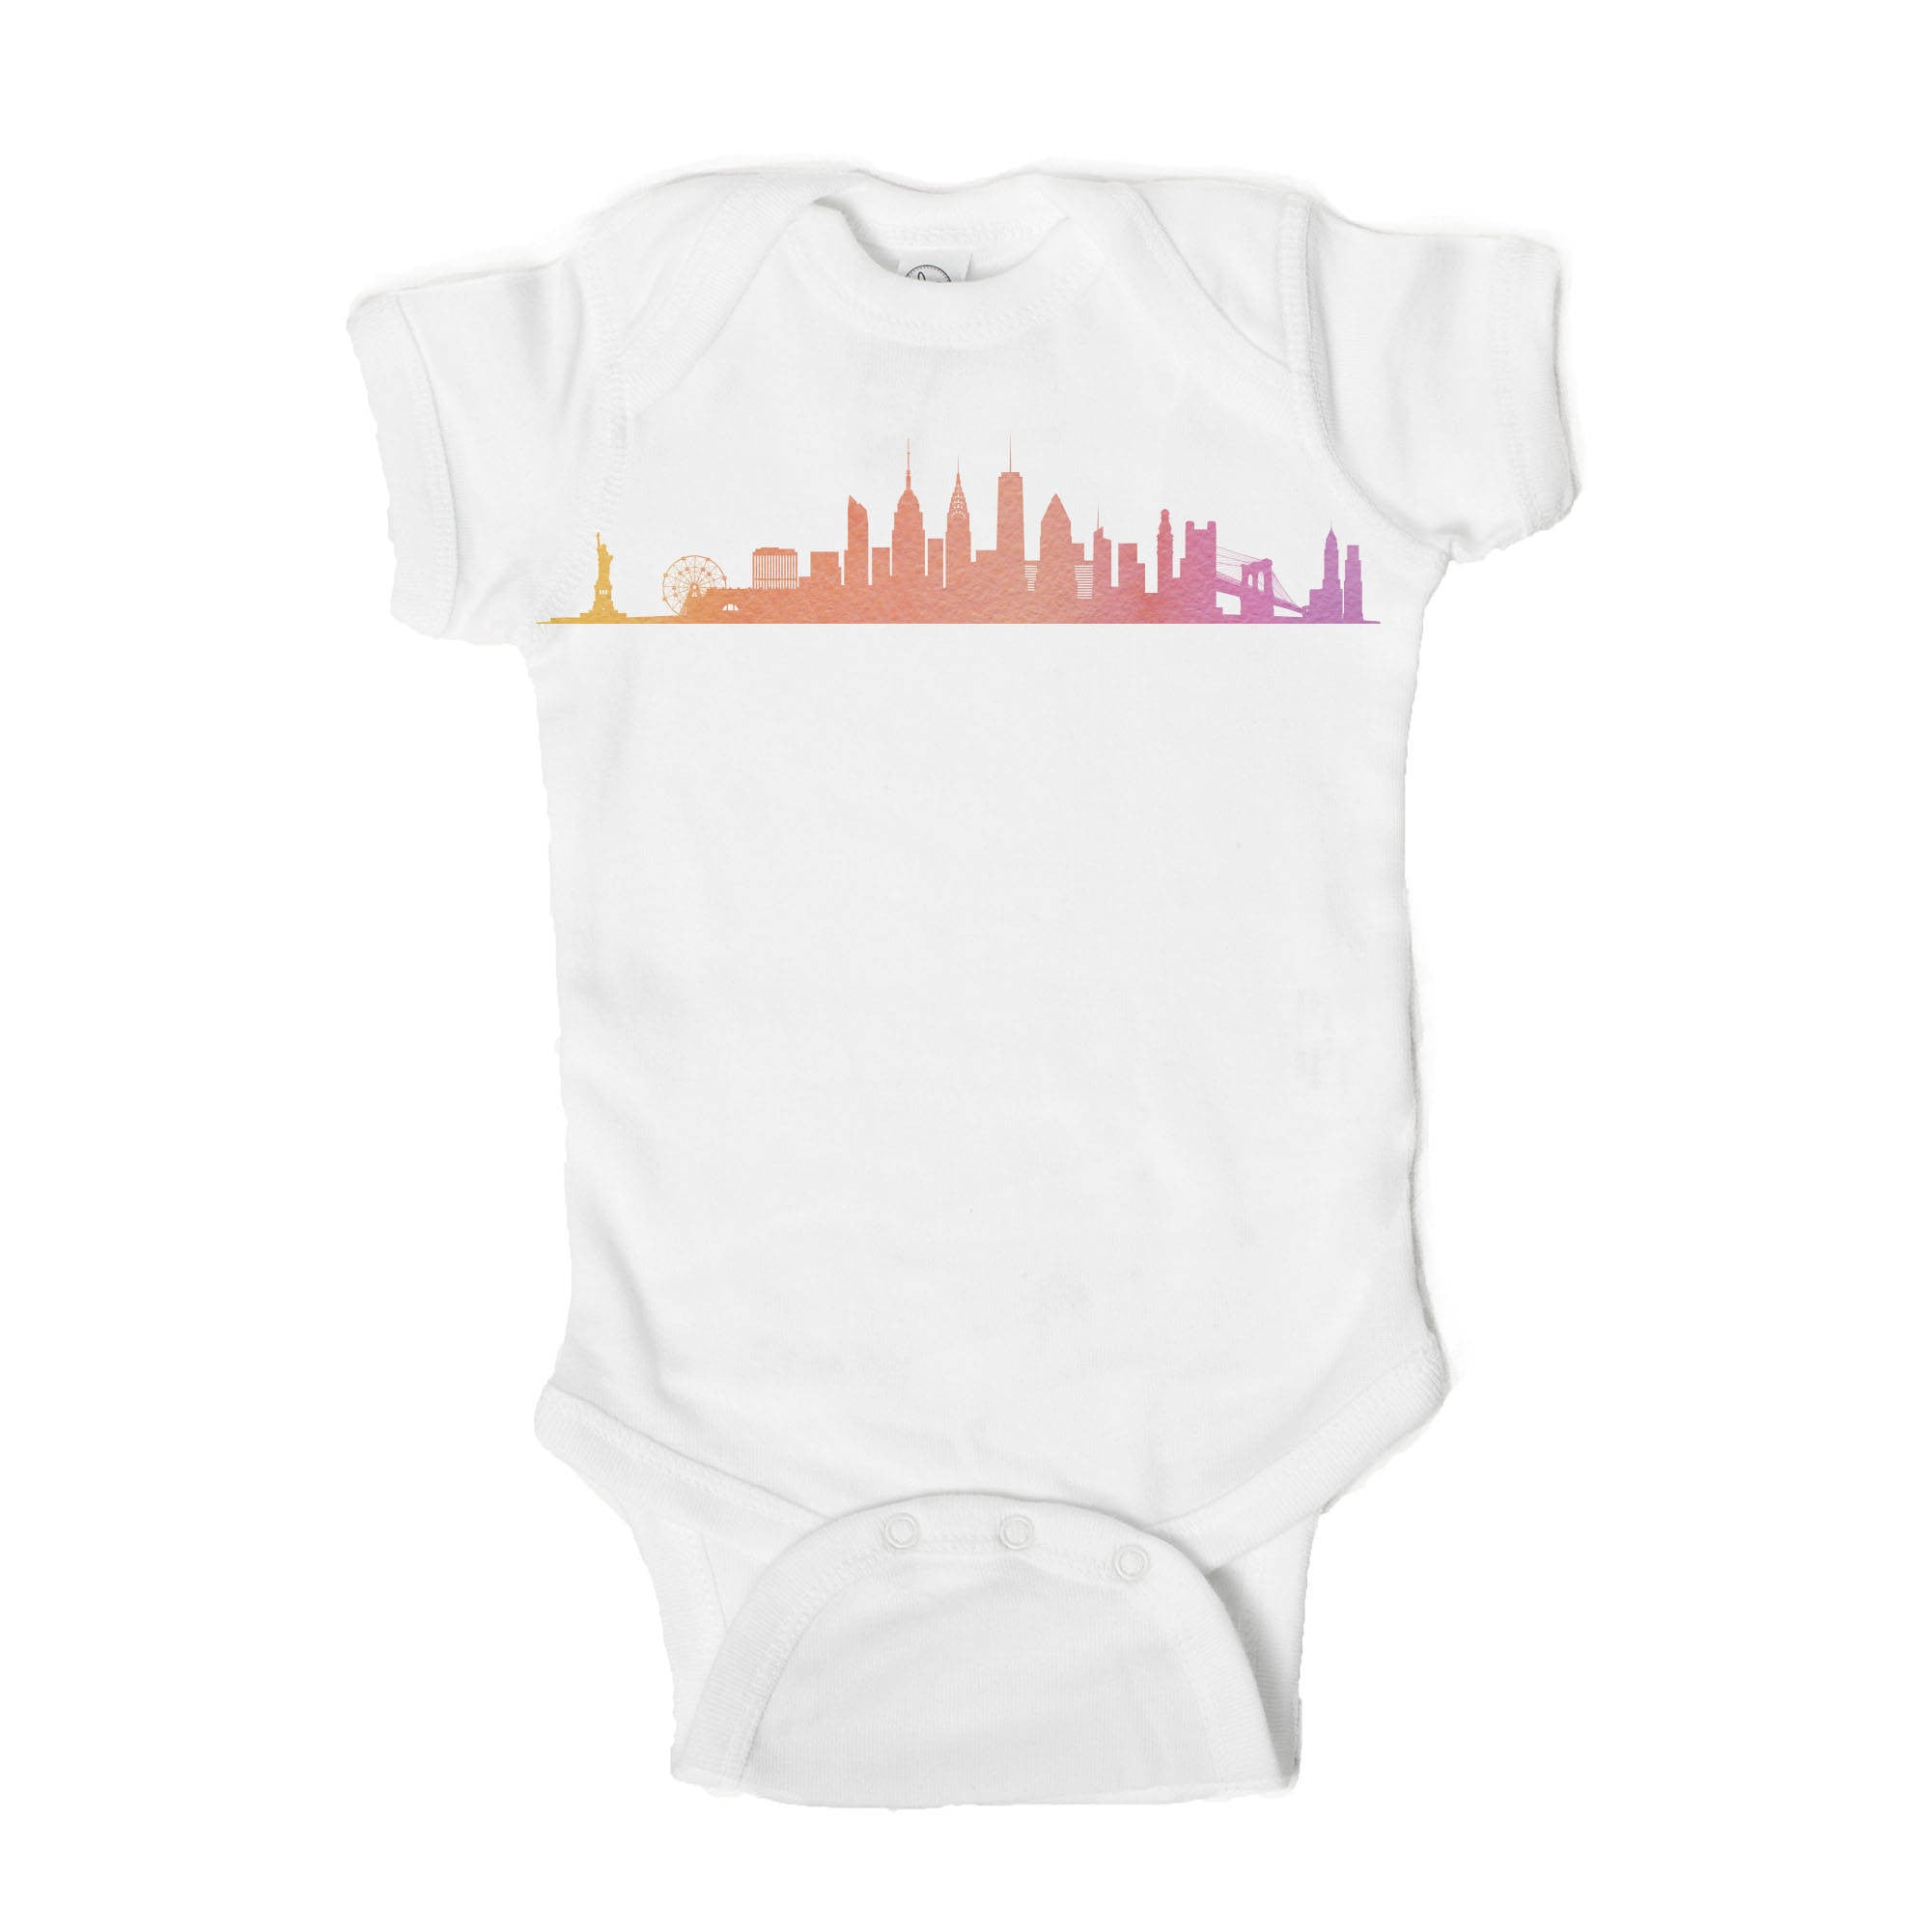 New York Skyline Baby Onesie - One Strange Bird